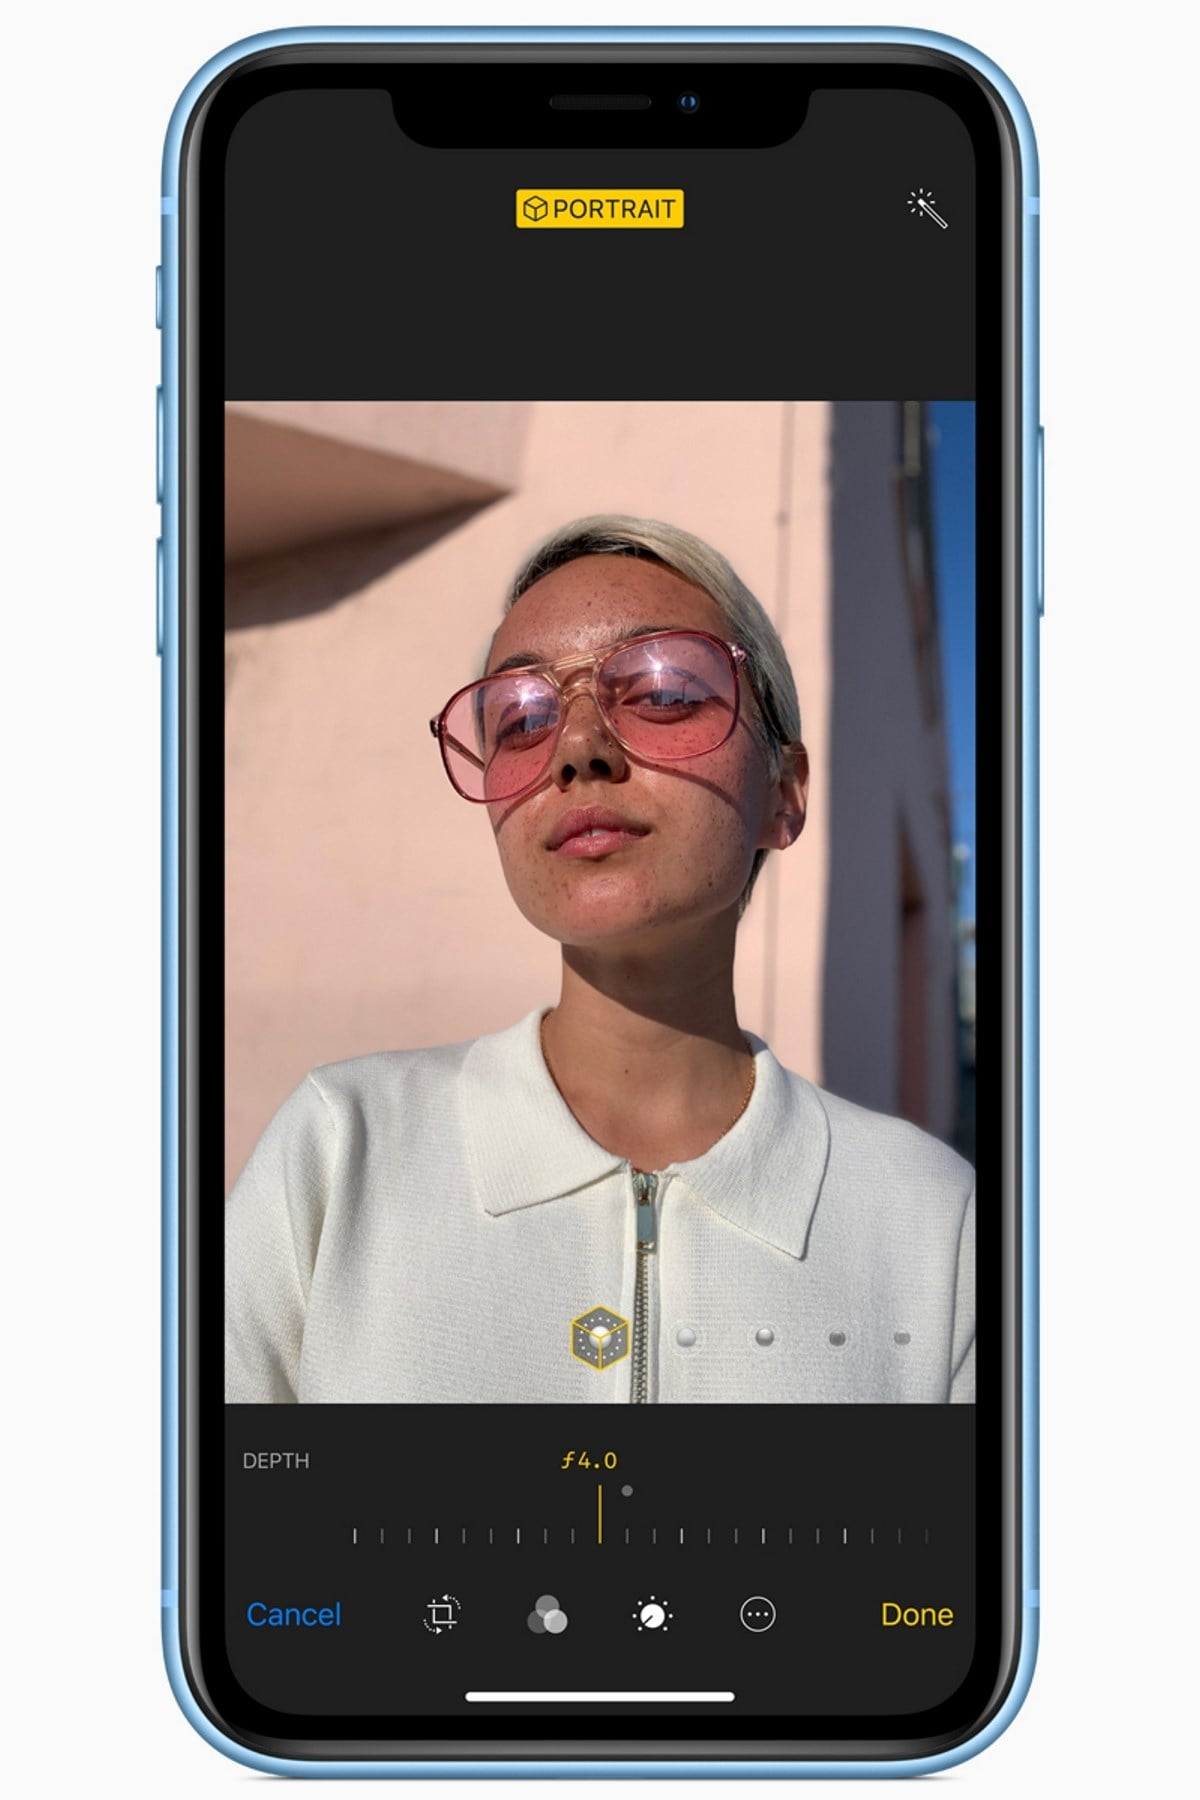 Halide will add XR in iPhone portrait mode for any objects